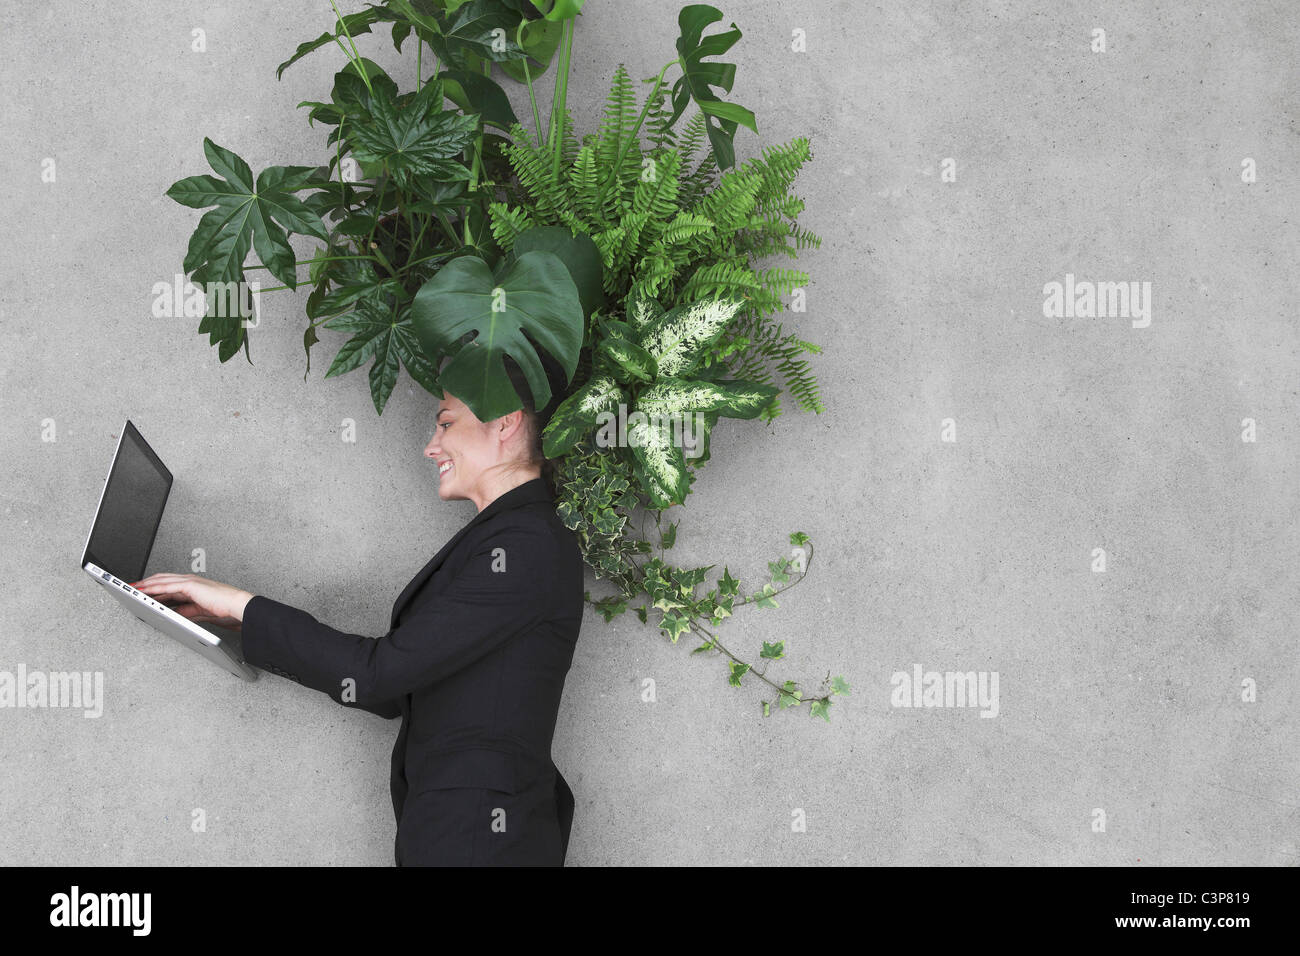 Businesswoman using laptop, foliage plants on head, smiling, portrait, elevated view - Stock Image